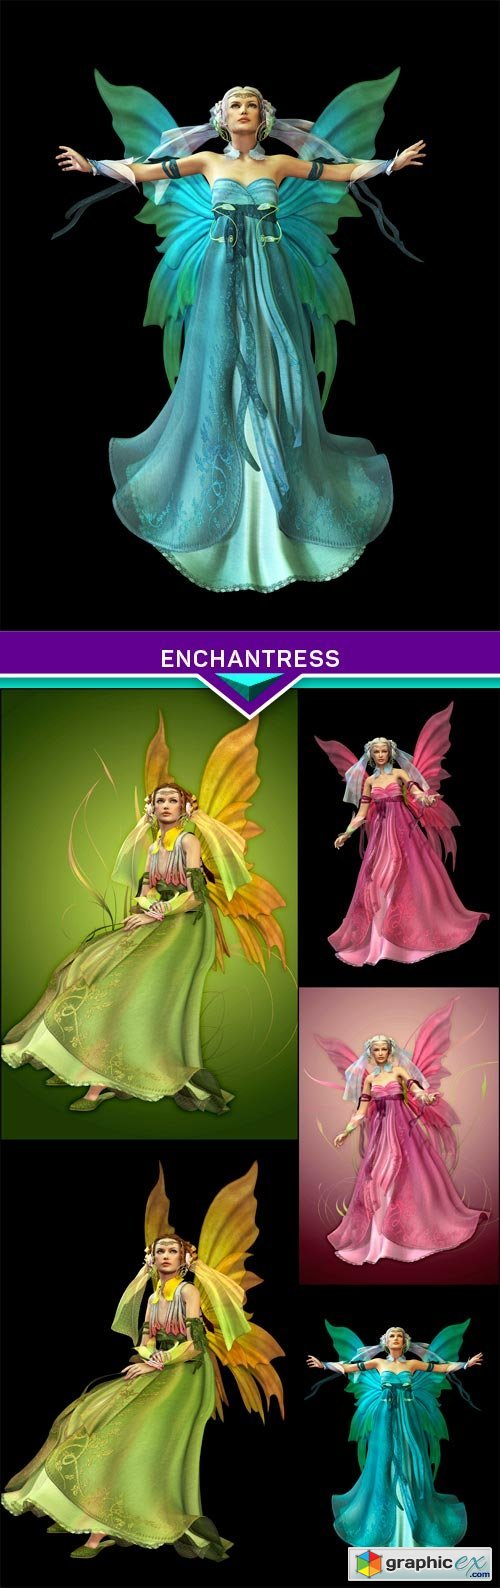 Enchantress 5X JPEG